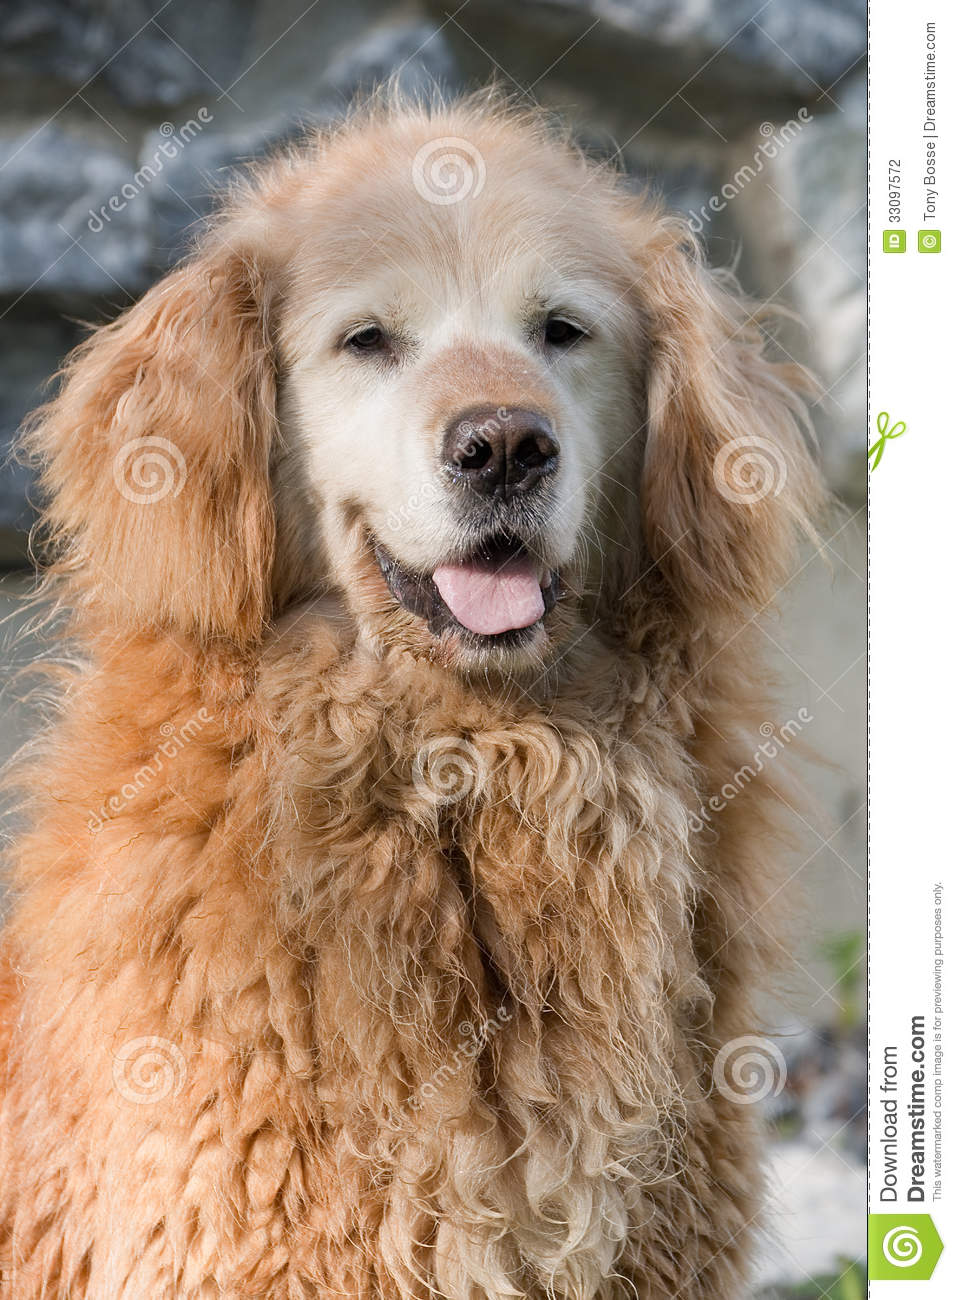 Old Curly Golden Retriever Stock Photo  Image of